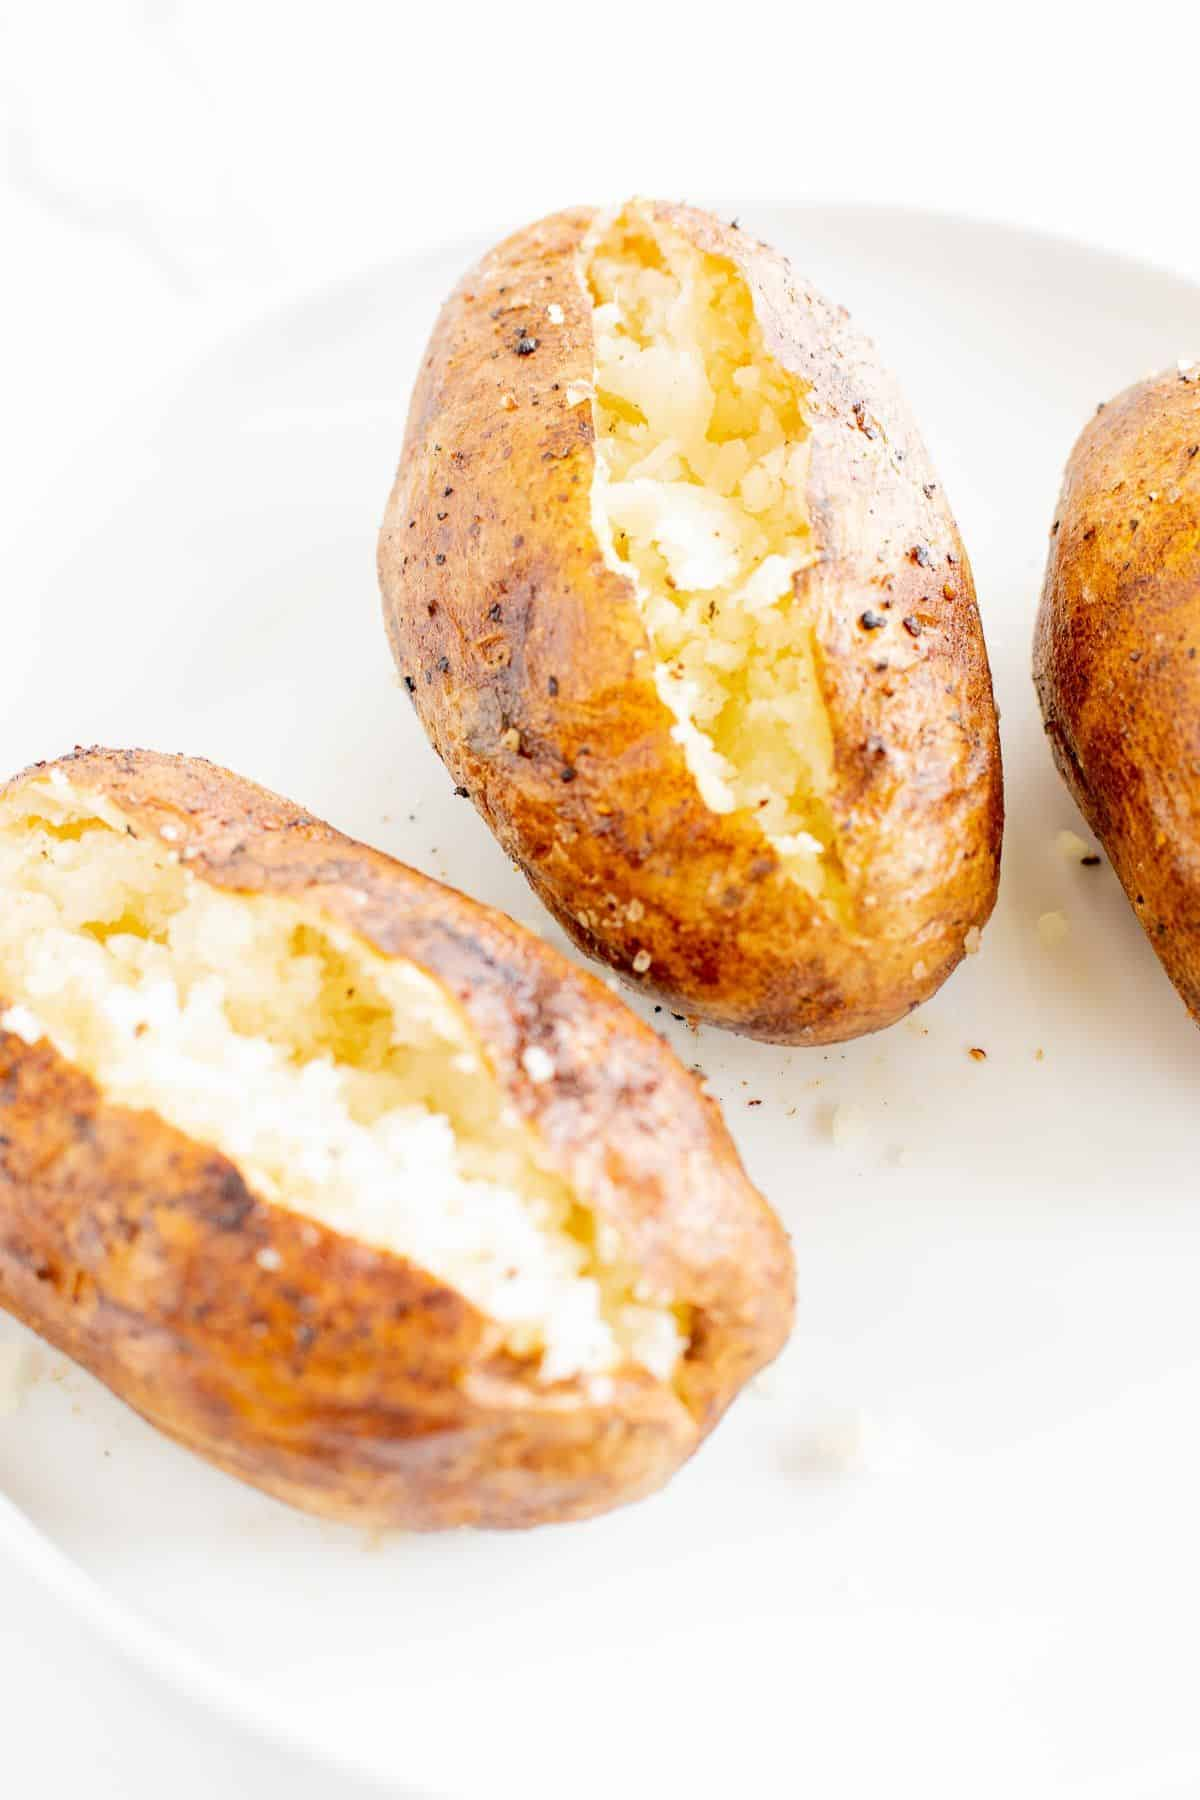 grilled baked potatoes sliced open and placed on a white surface.